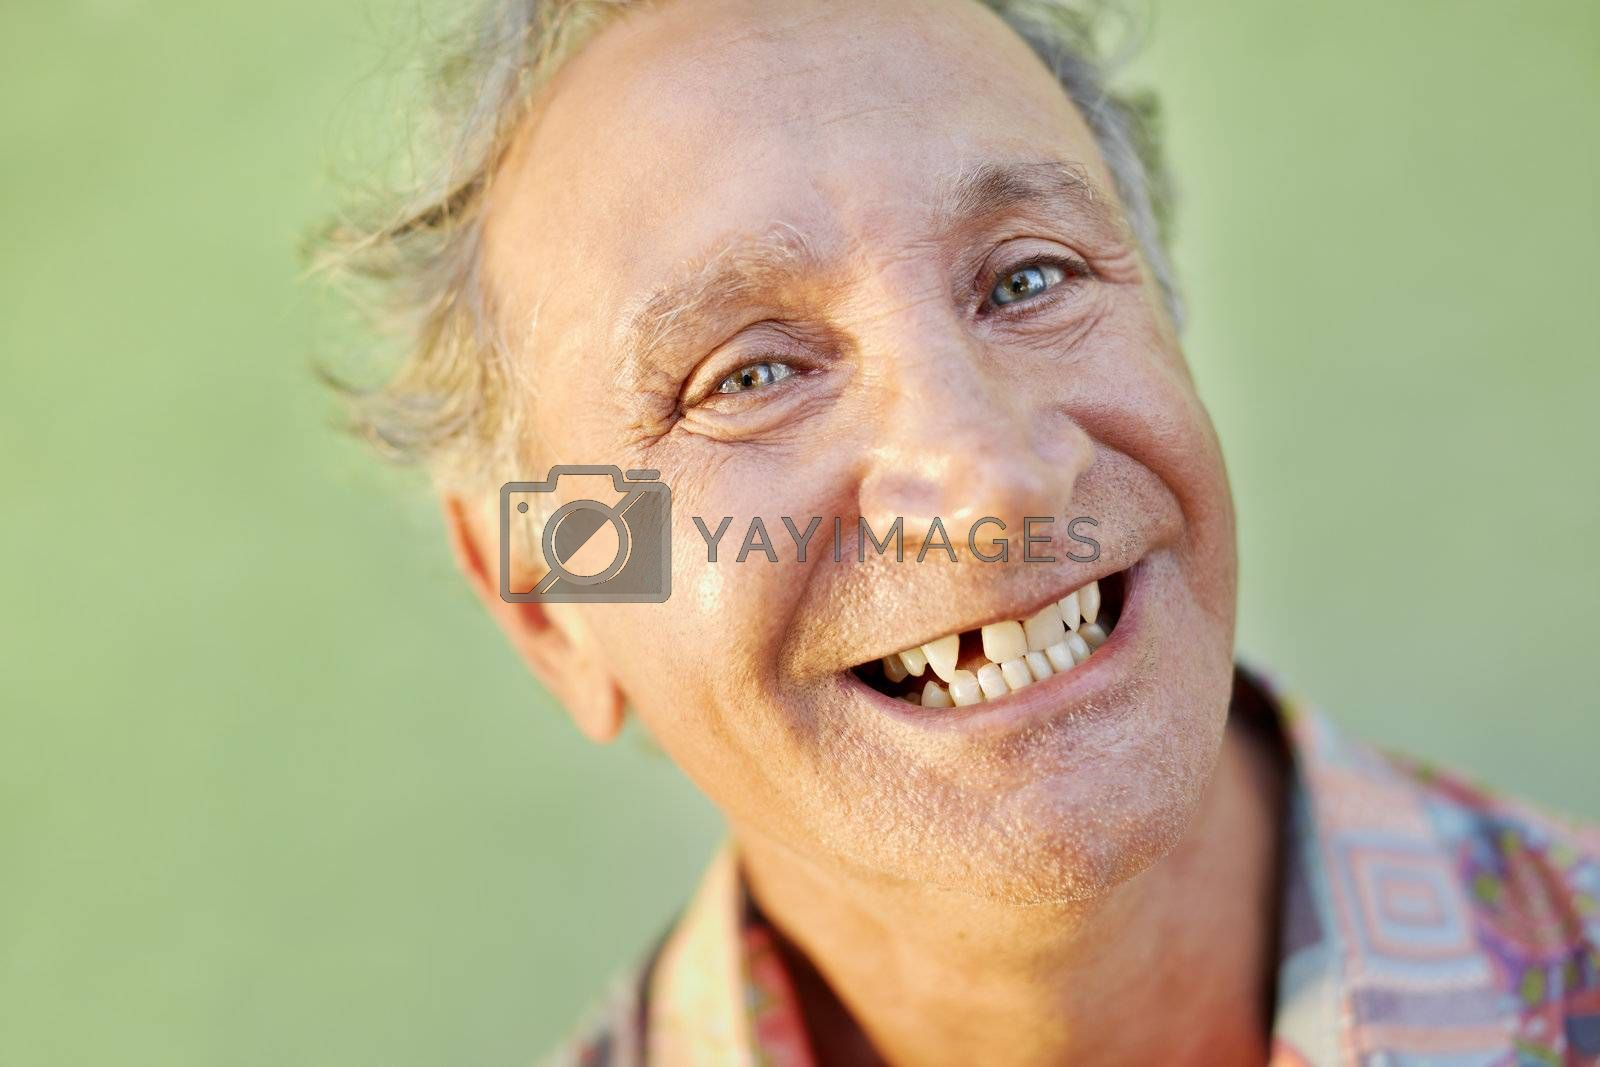 portrait of senior caucasian man with dental problems showing missing tooth and smiling. Horizontal shape, copy space